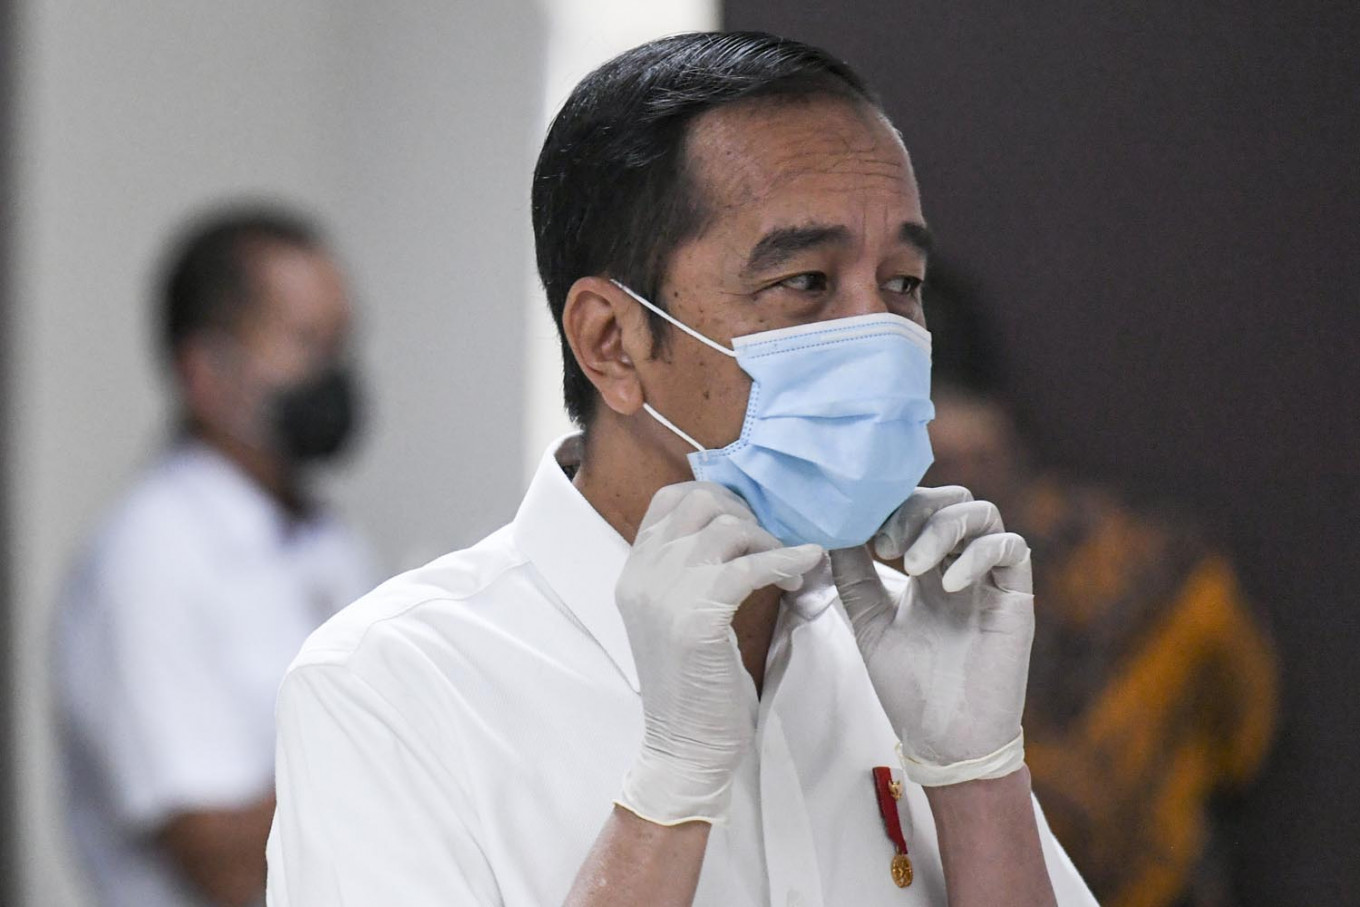 COVID-19: Jokowi calls on task force to accelerate swab tests, rapid tests